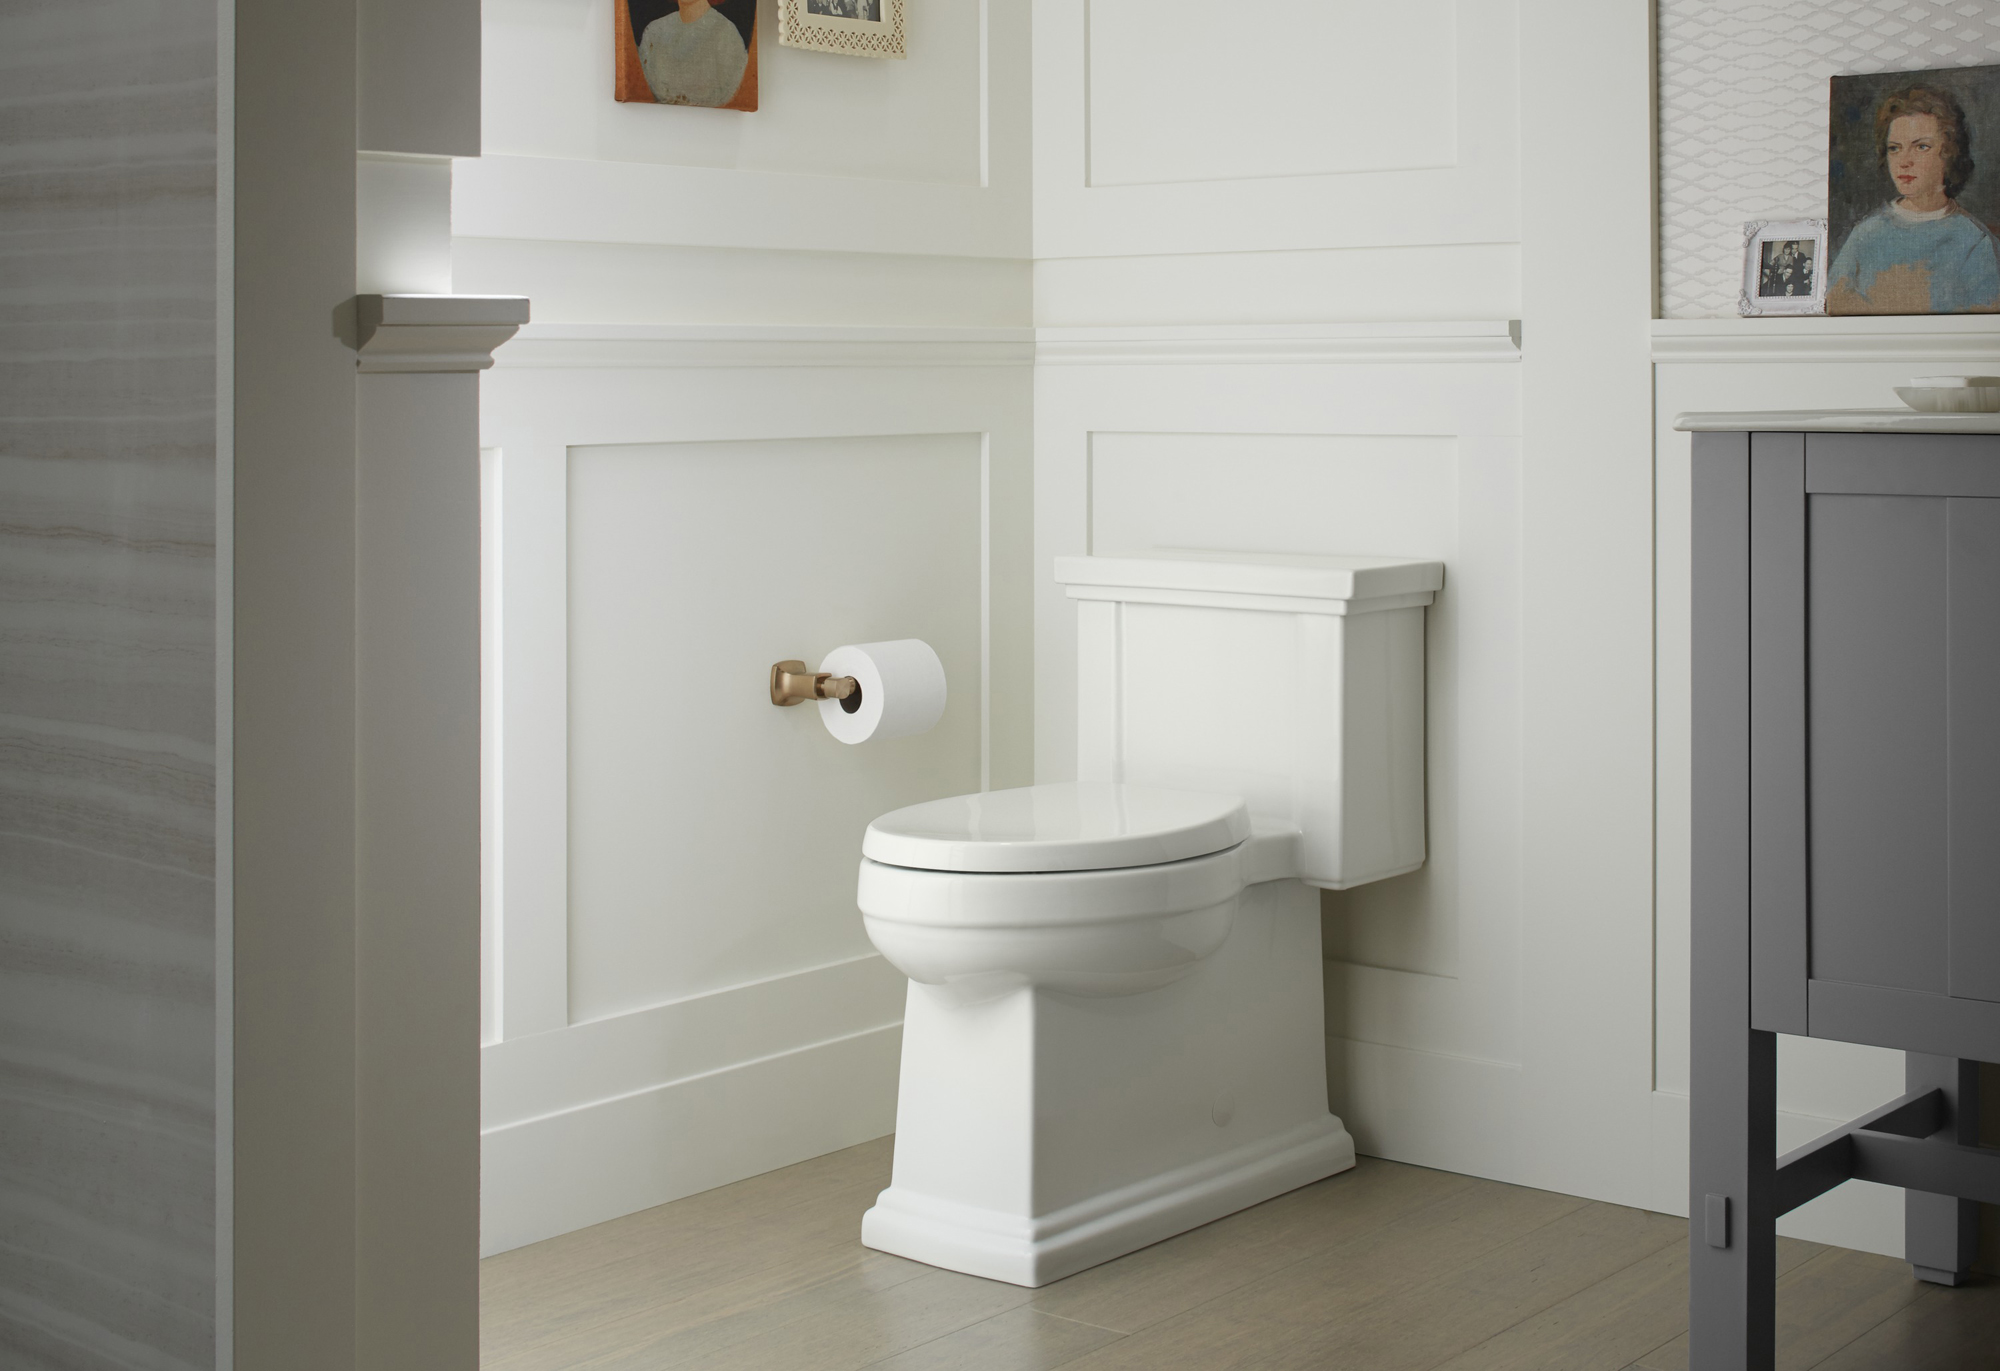 Margaux® toilet tissue holder     Tresham® toilet     A one-piece toilet with skirted trapway delivers a streamlined look and makes cleaning your toilet easy.